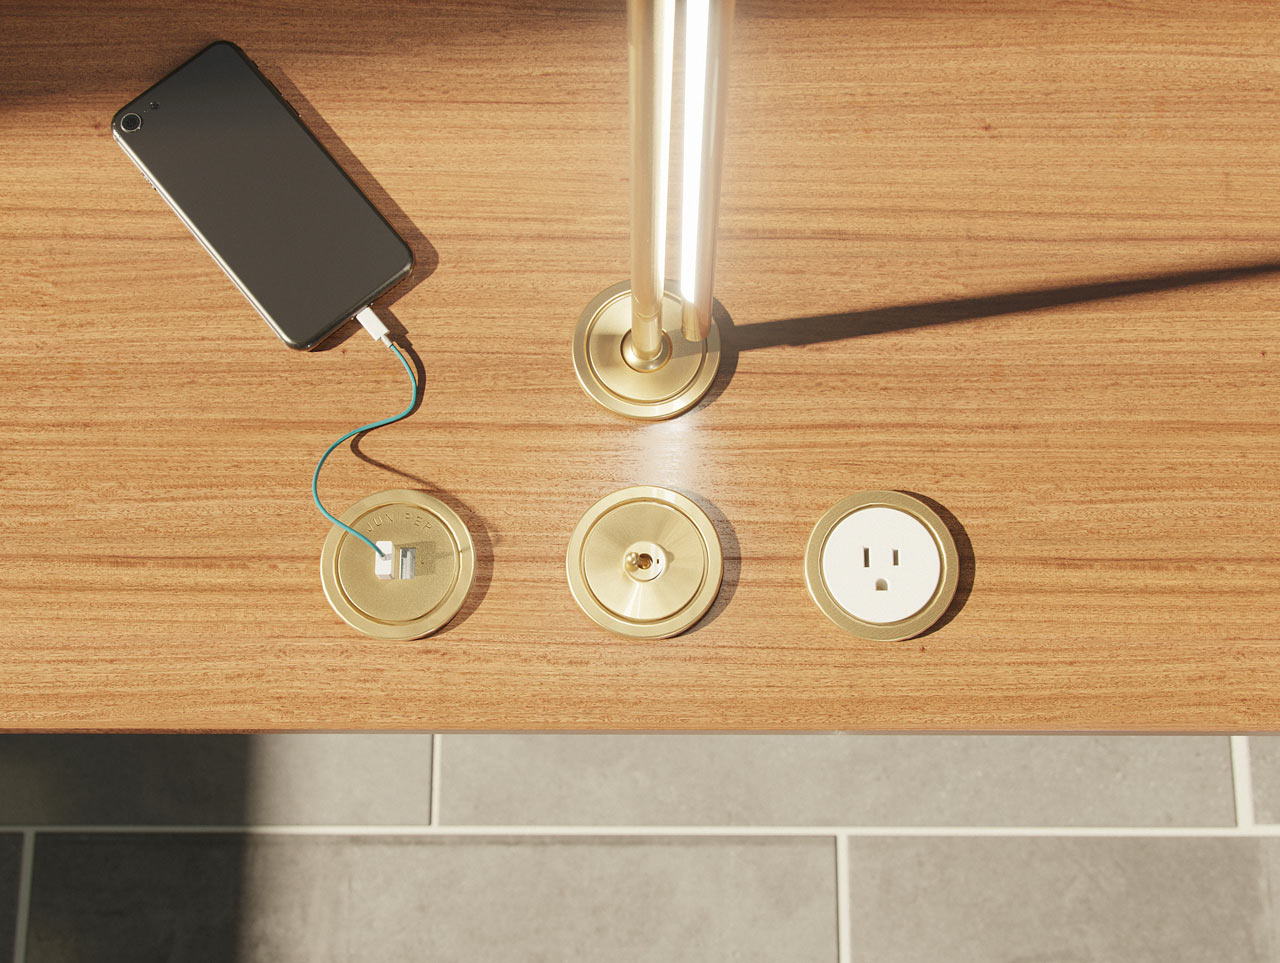 Ground Control: NASA-Inspired Power Accessories by Juniper